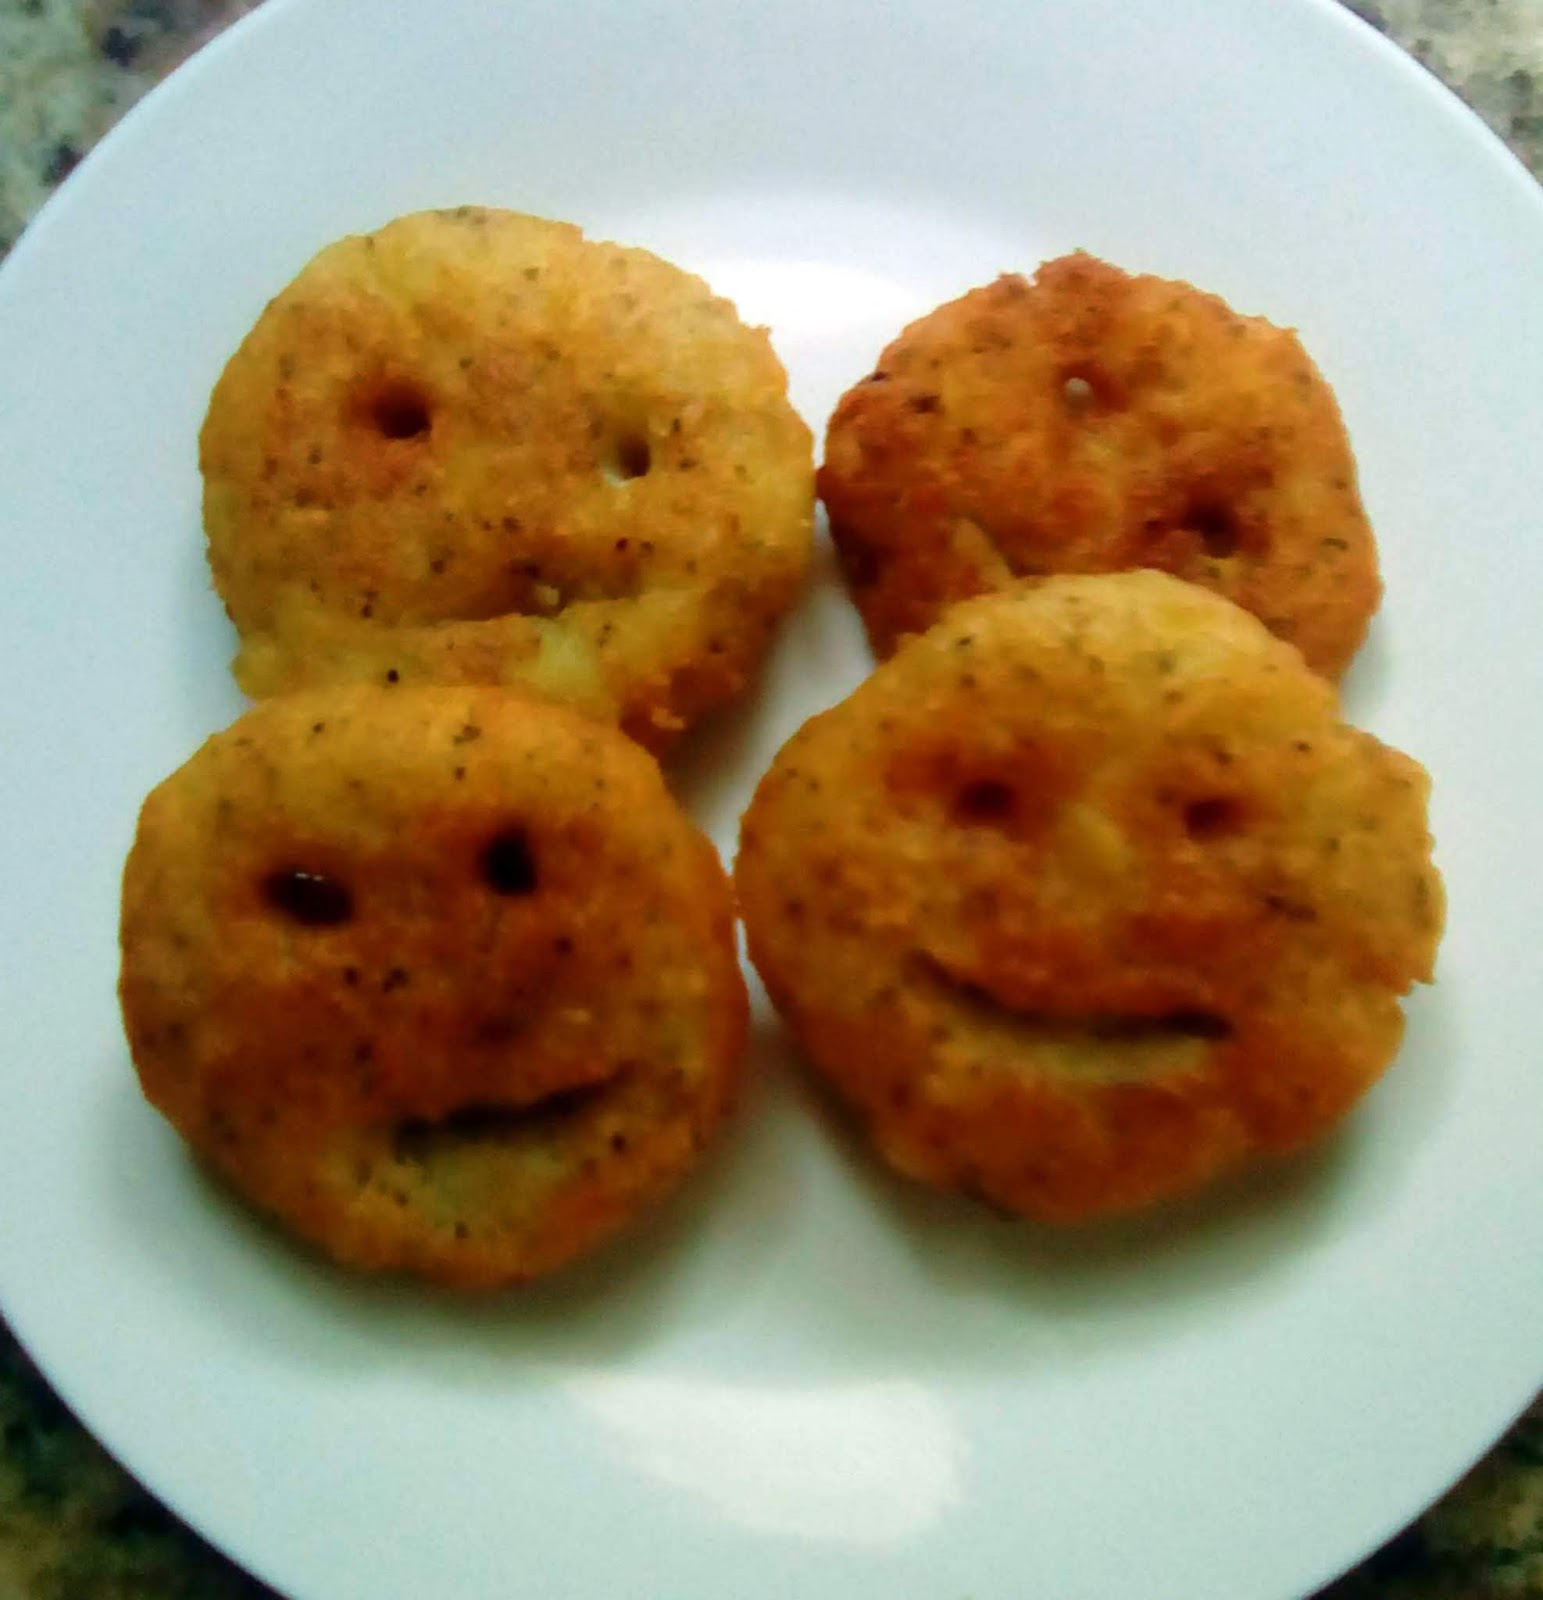 Homemade Allergy Friendly GlutenFree DairyFree Potato Smilies